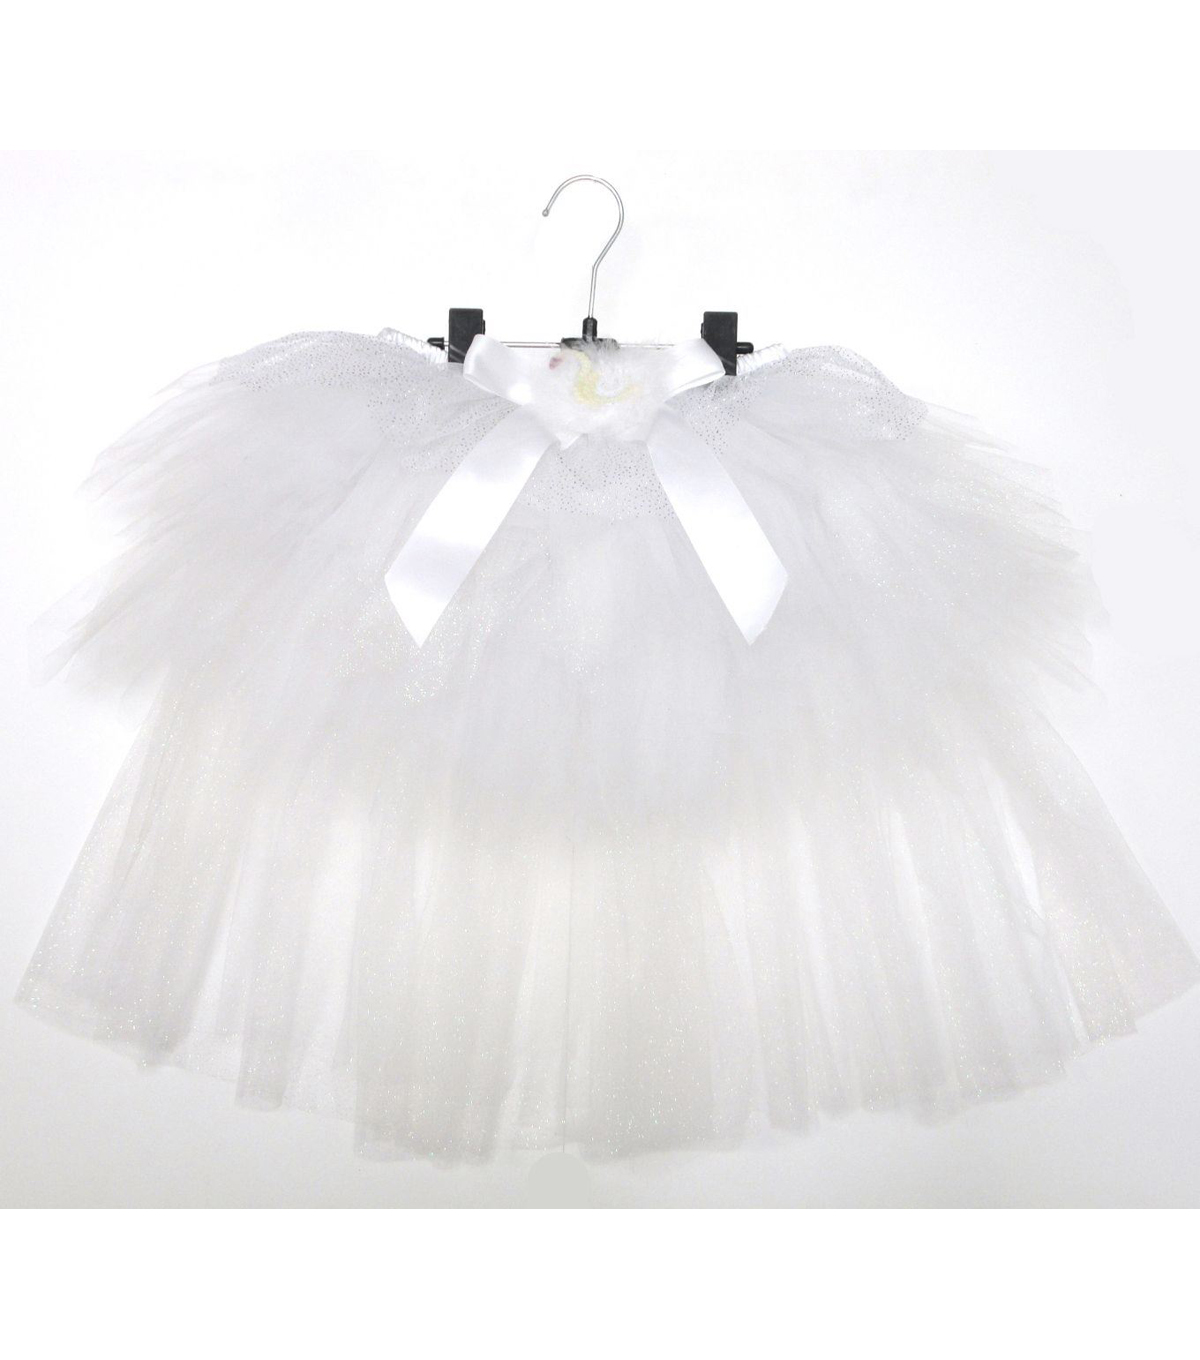 Maker's Halloween Child Swan Tutu